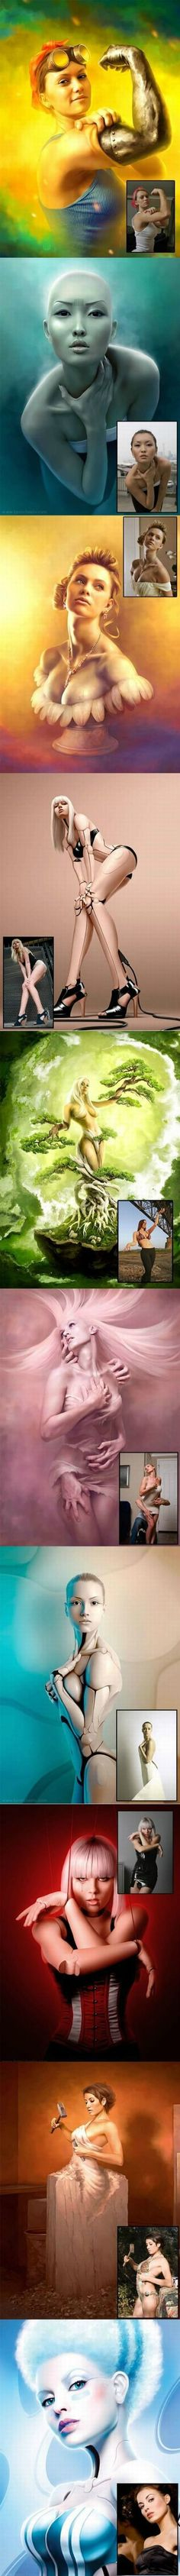 Surreal Photoshop of beautiful, strong women - Imgur ---- [  I like the first pic, but the rest are a bit creepy.  ]